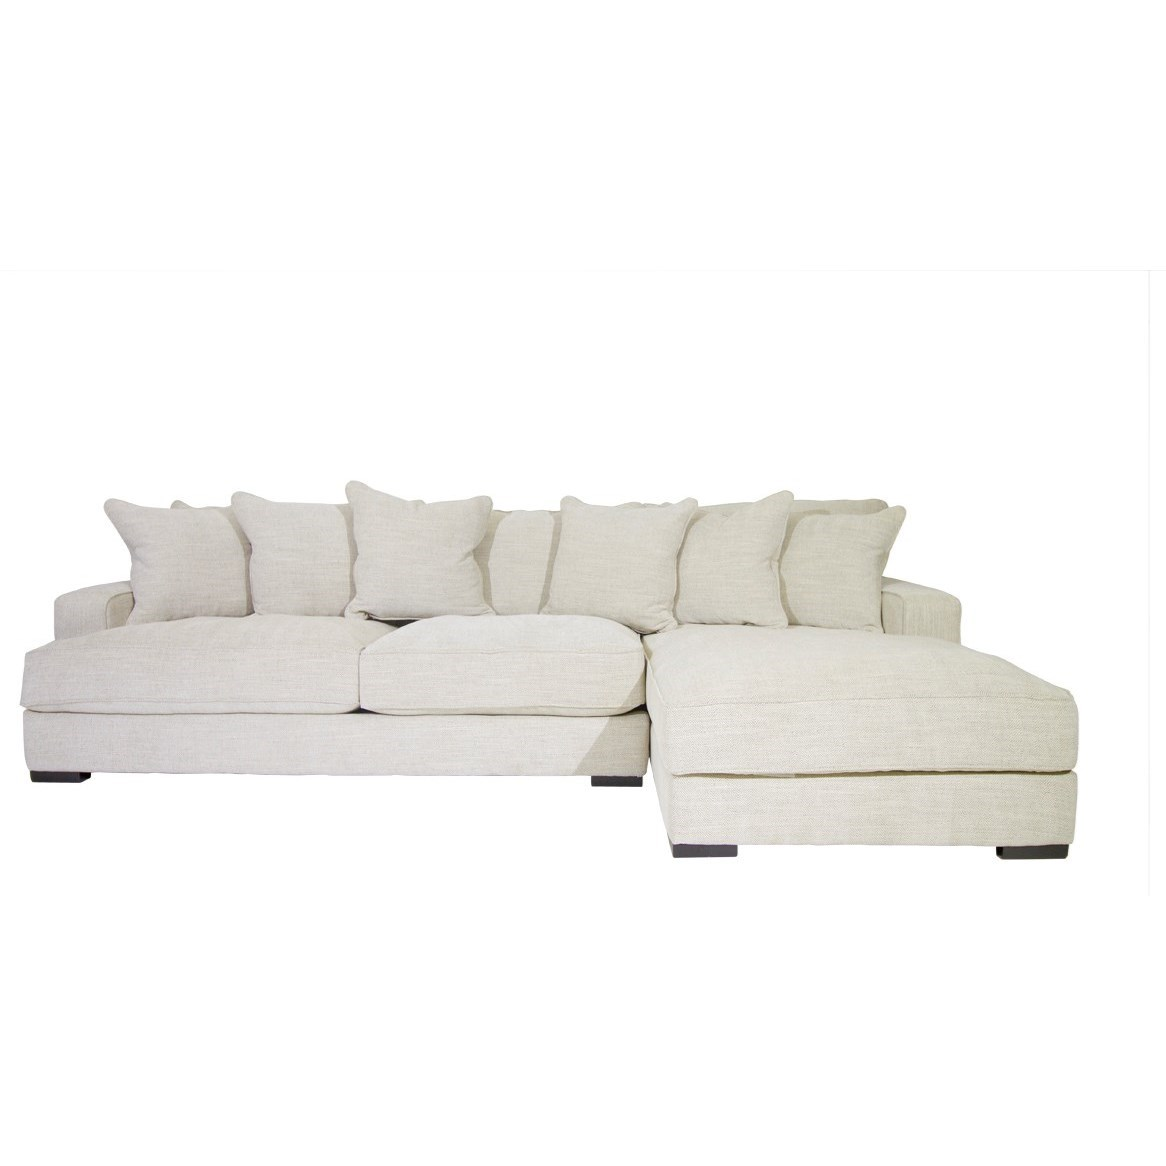 Jonathan Louis Axis Ii Contemporary Sectional Sofa With Chaise Bennett 39 S Home Furnishings